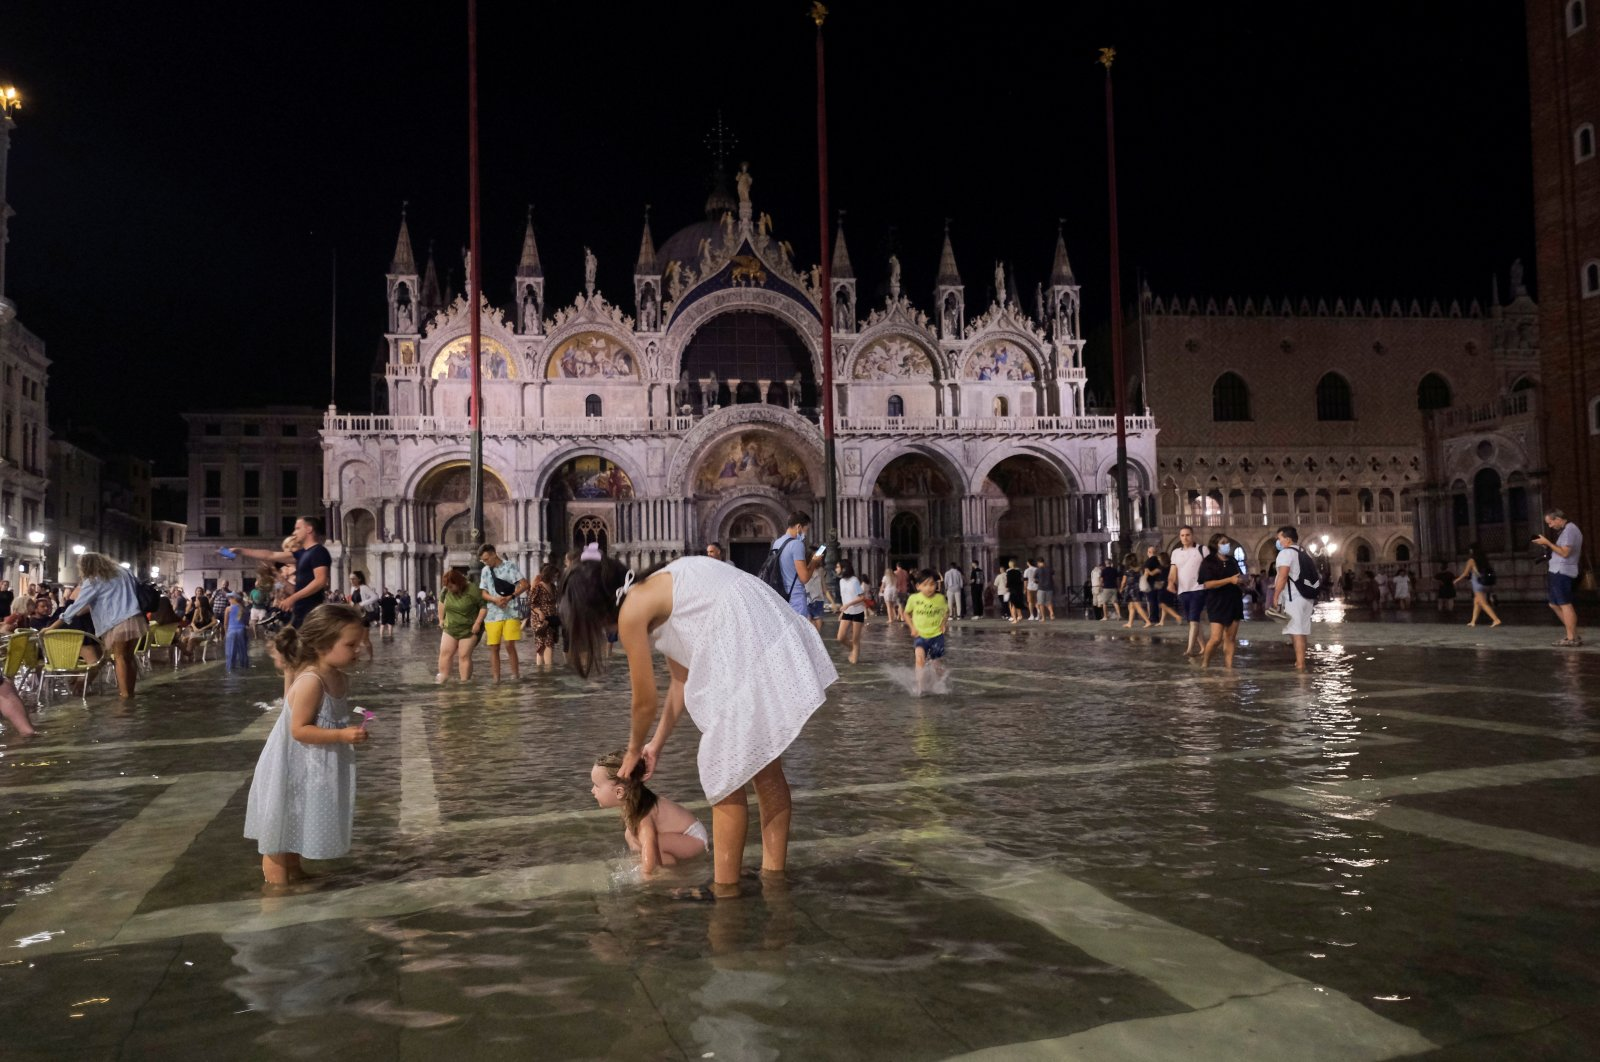 People walk in a flooded St. Mark's Square after waters rose exceptionally high in Venice, Italy, Aug. 8, 2021. (Reuters Photo)